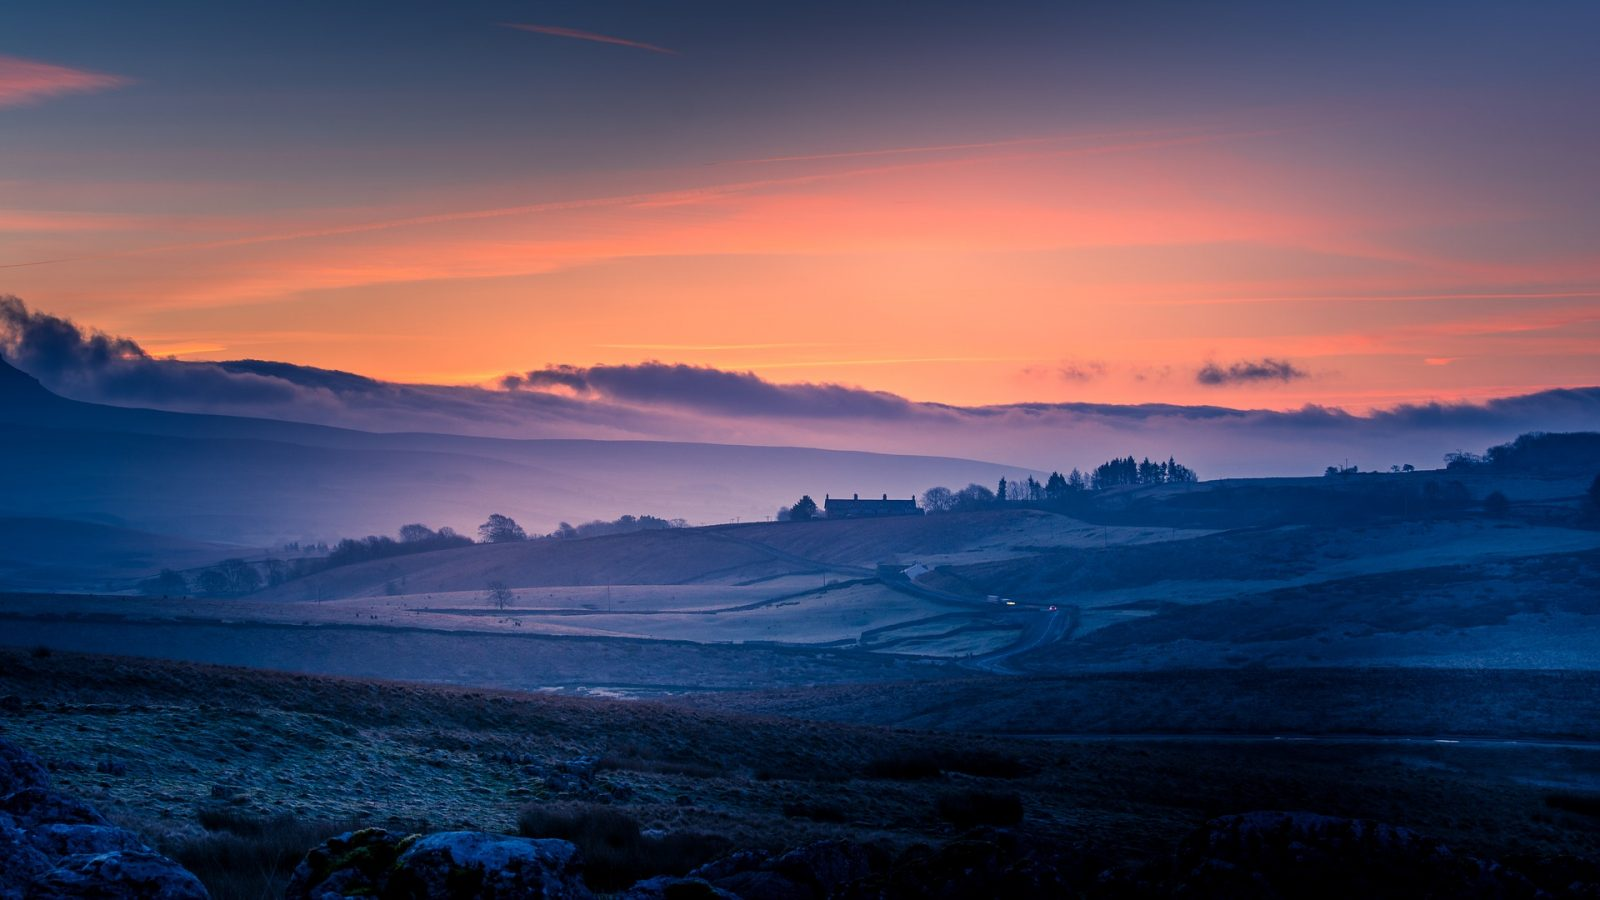 yorkshire-dales-2443076_1920